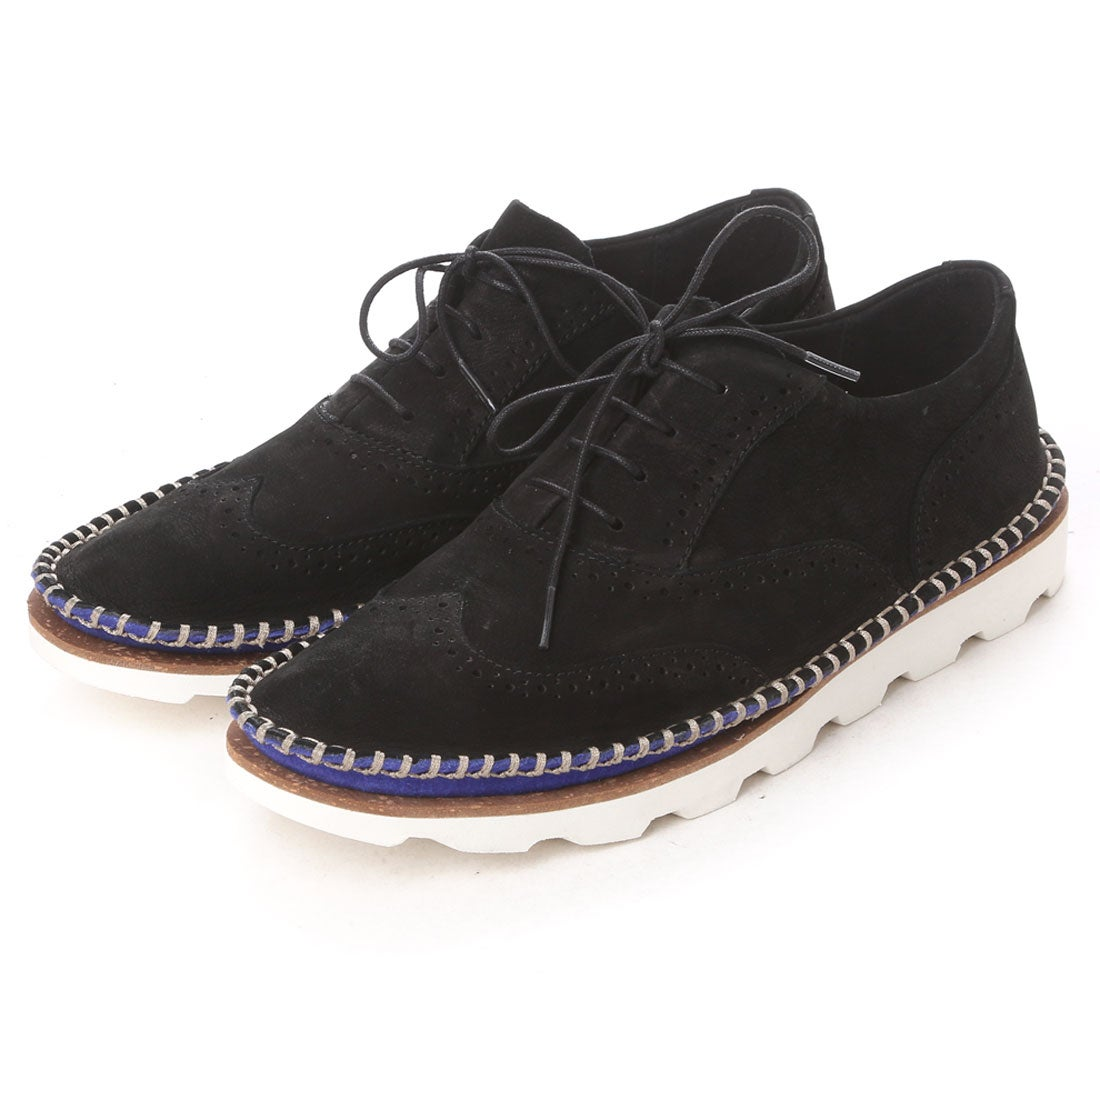 【SALE 30%OFF】クラークス Clarks Damara Rose Black Nubuck (ブラック) レディース